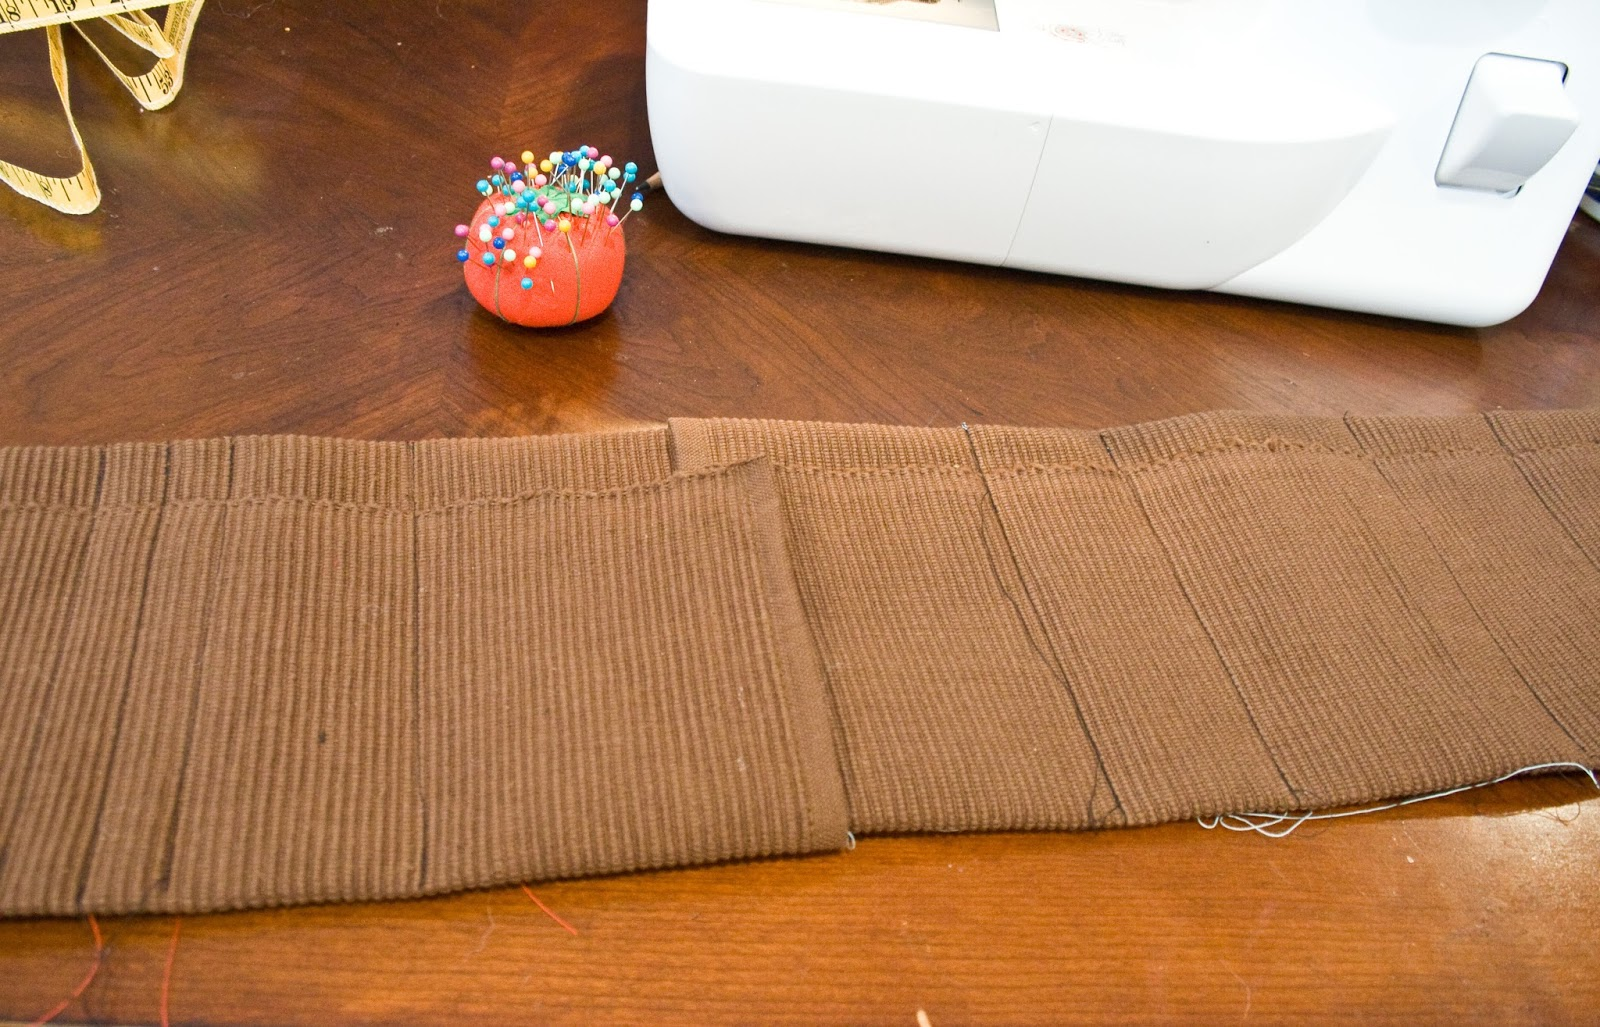 Diy Purse Organizer From Placemat Patterns   SEMA Data Co-op